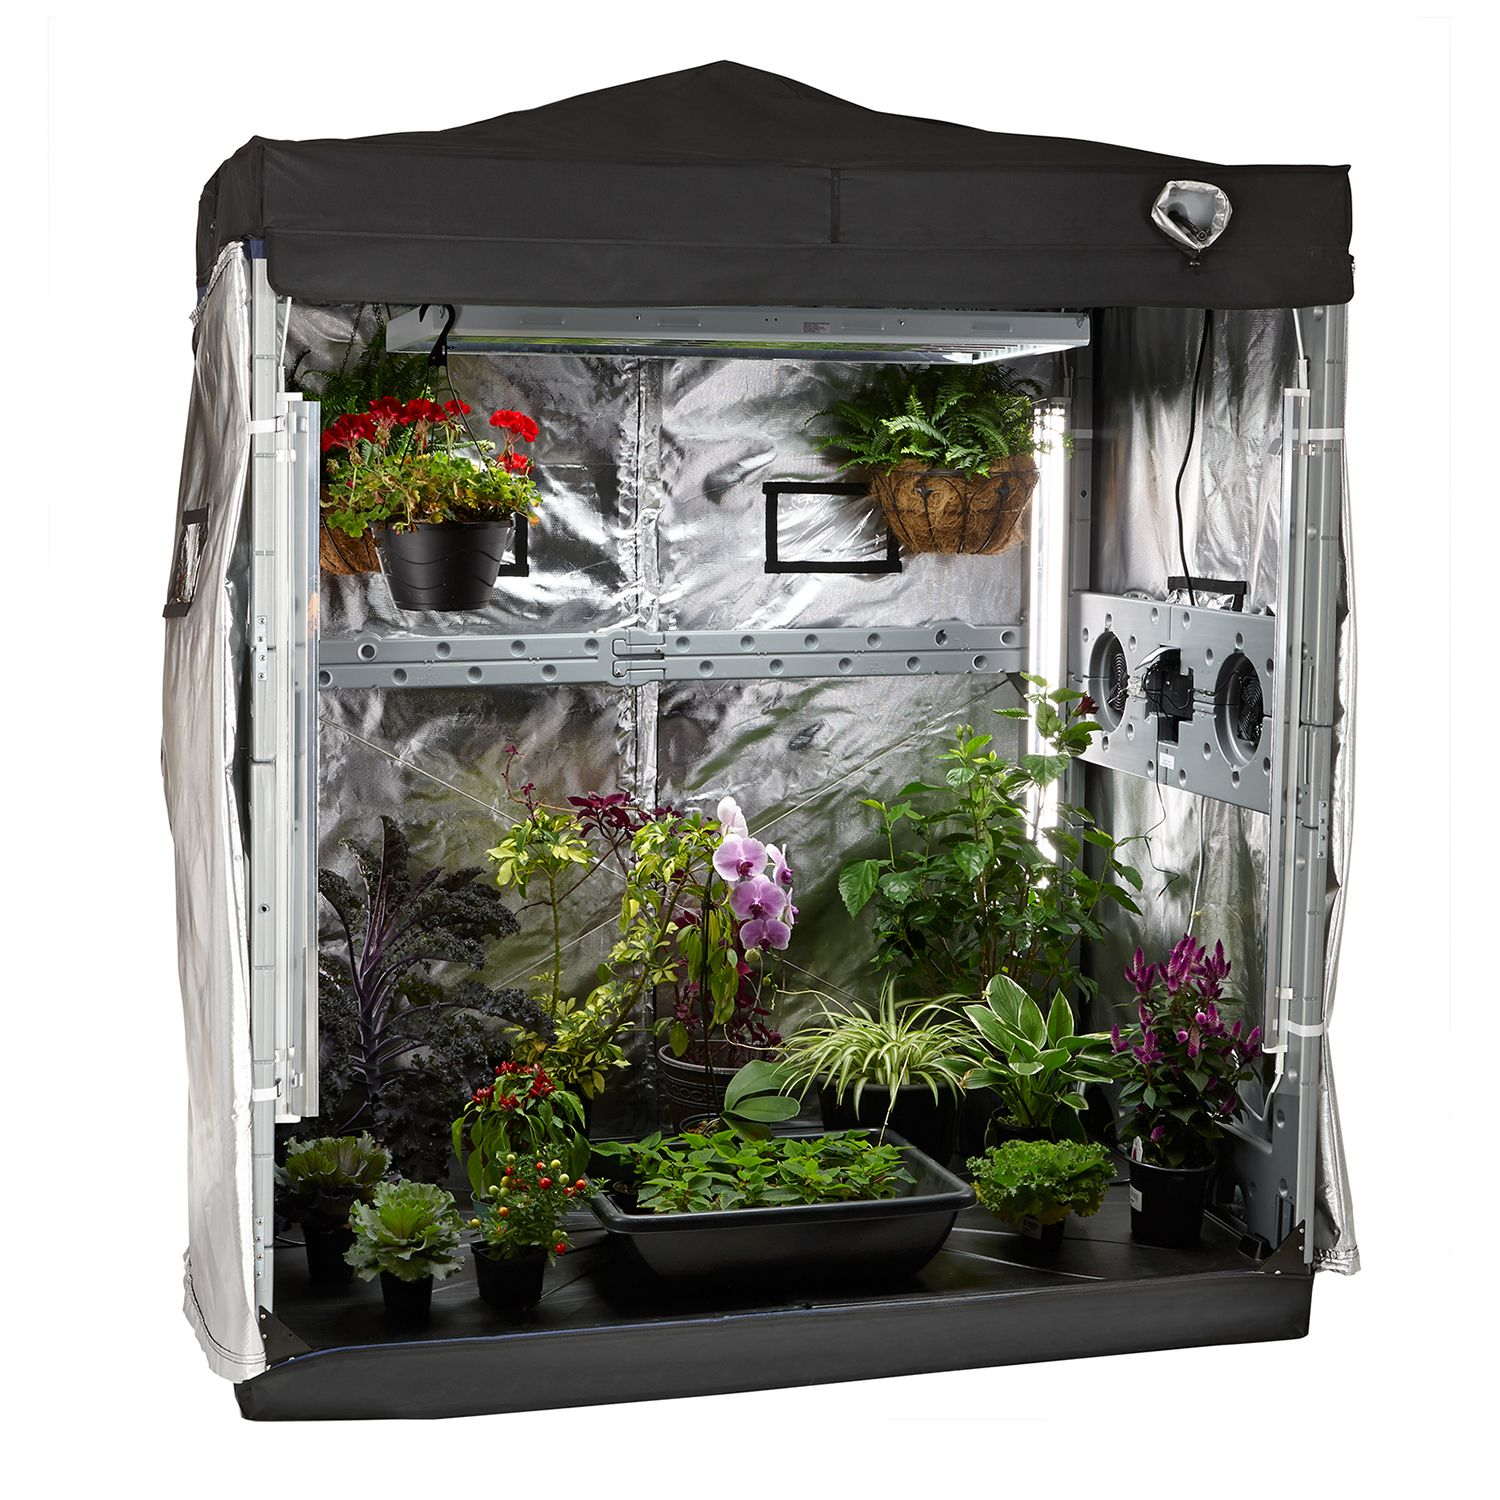 Indoor Greenhouse Grow Light Tent Garden Kit Hydroponic